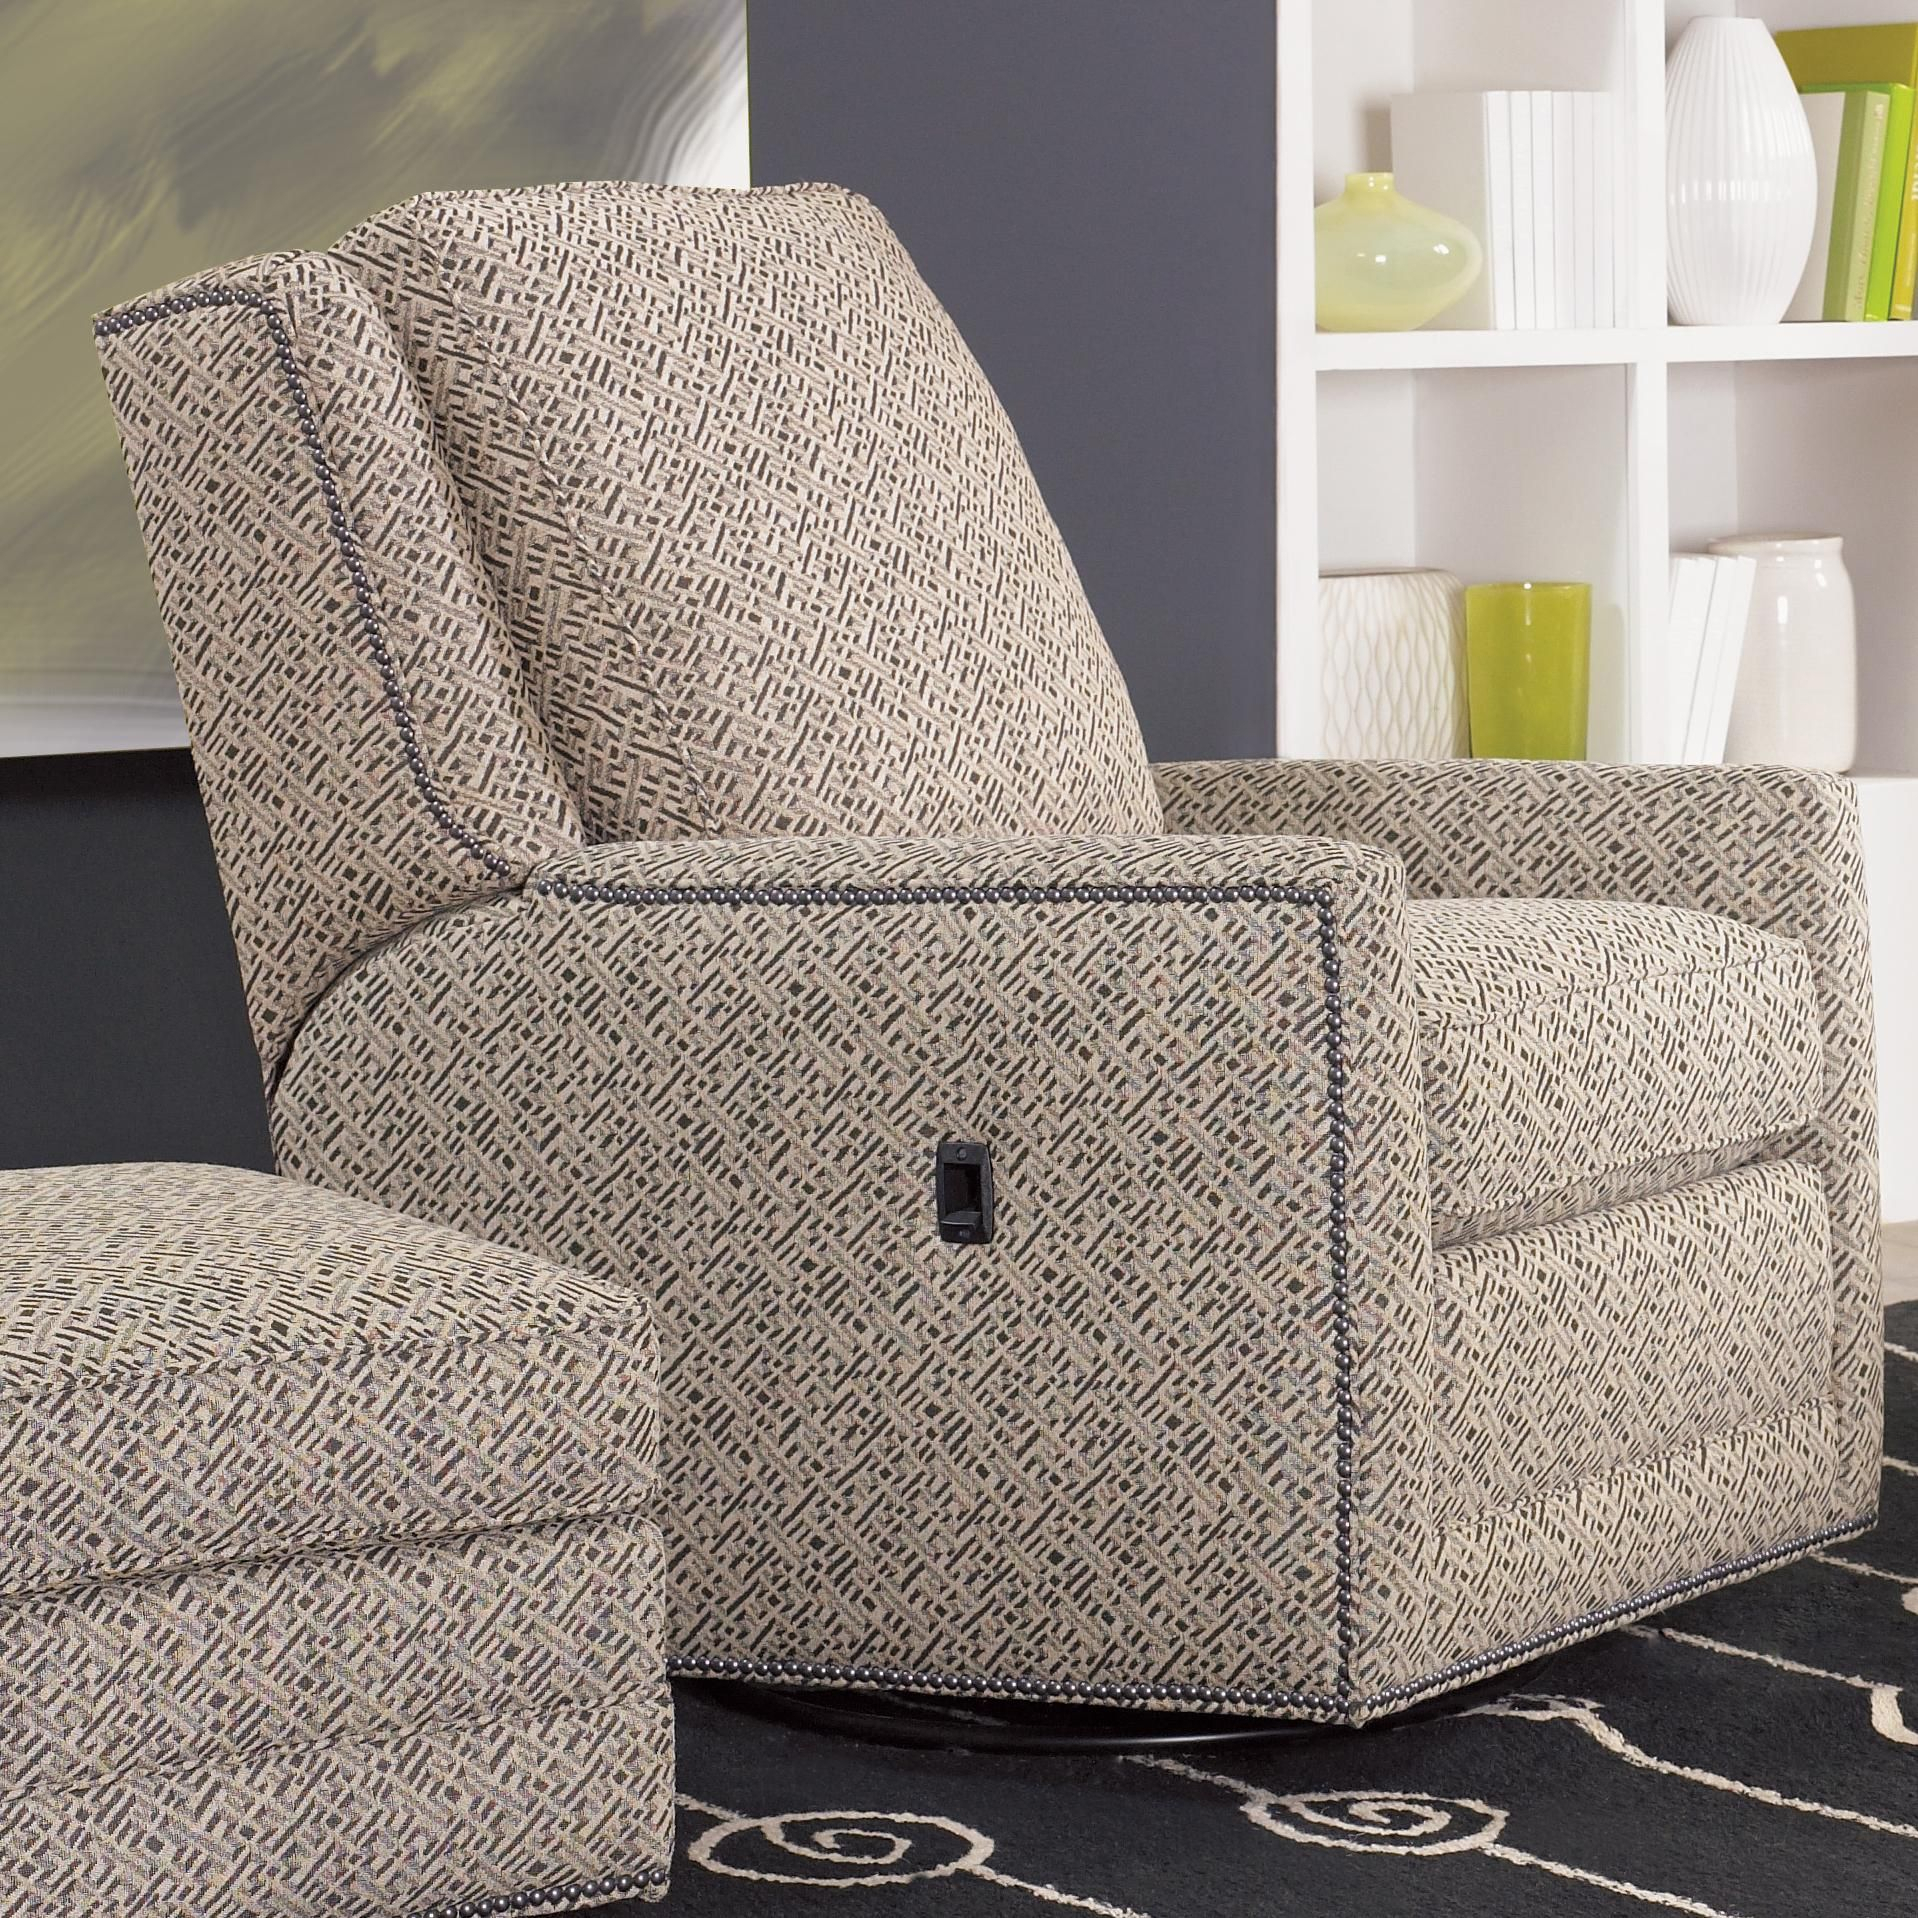 Recliners Swivel Tilt Back Chairsmith Brothers | Recliner Pertaining To Bailey Linen Flare Arm Wing Skirted Swivel Gliders (Photo 5 of 20)